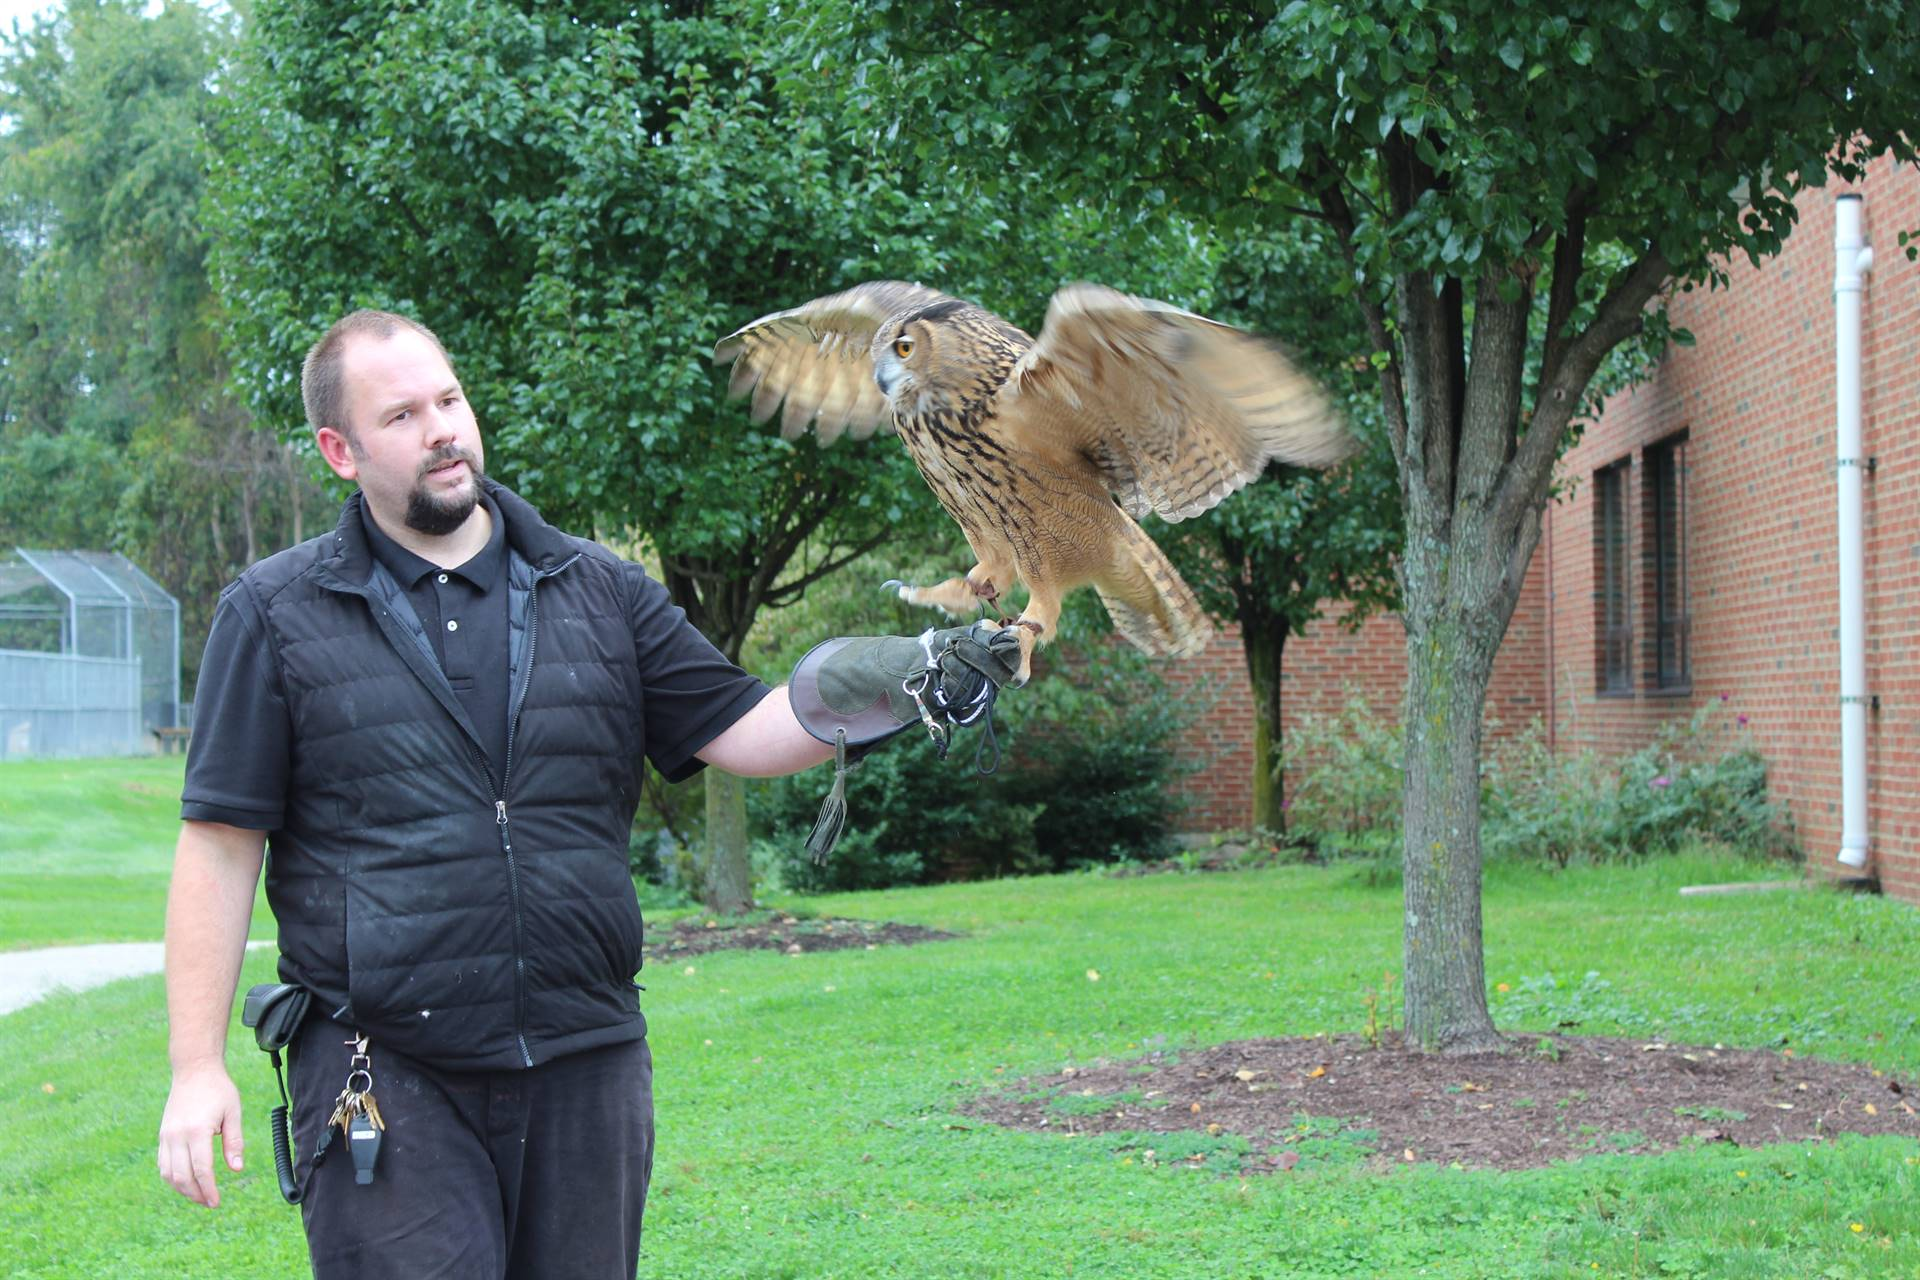 The owl flapping his wings while Mr. Davis holds him